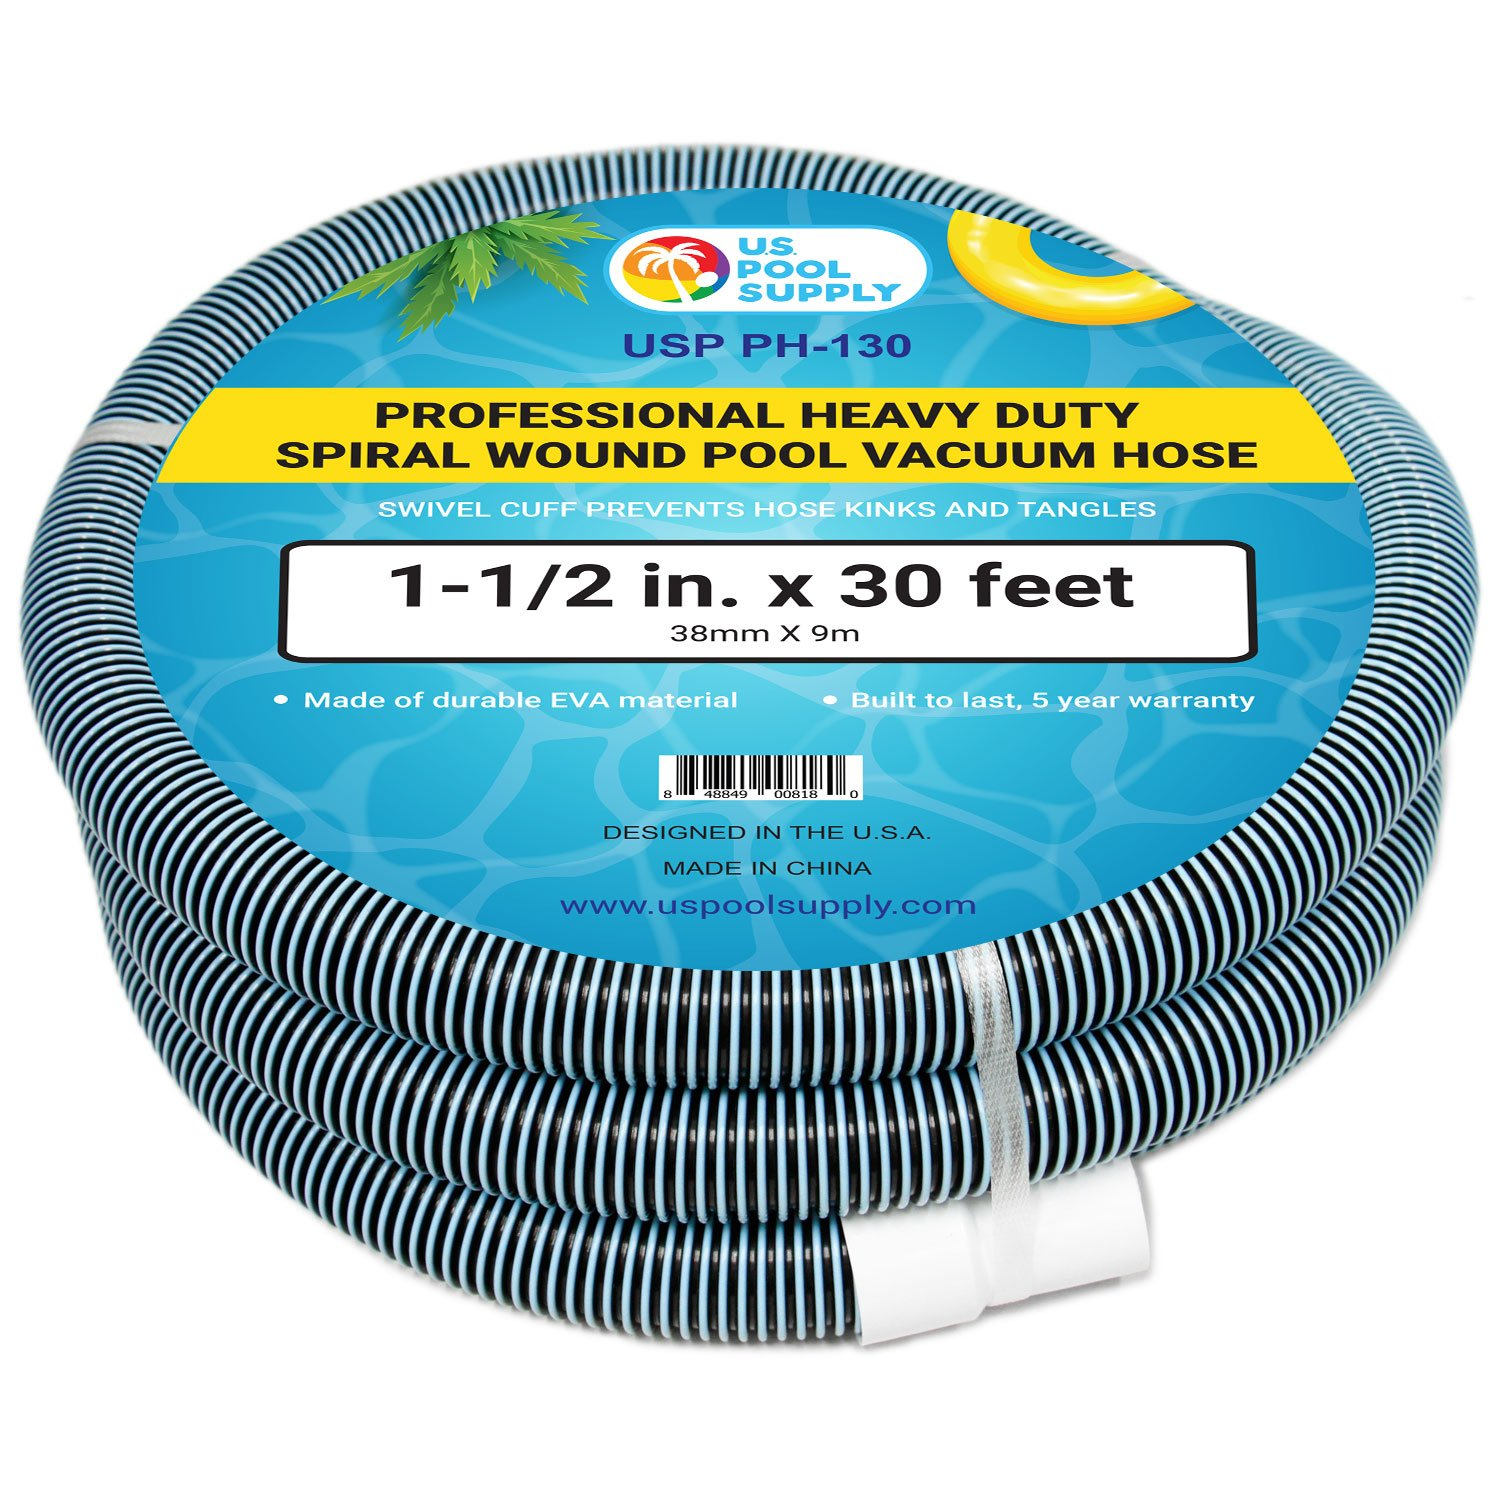 U.S. Pool Supply 1-1/2'' x 30 Foot Professional Heavy Duty Spiral Wound Swimming Pool Vacuum Hose with Swivel Cuff by U.S. Pool Supply